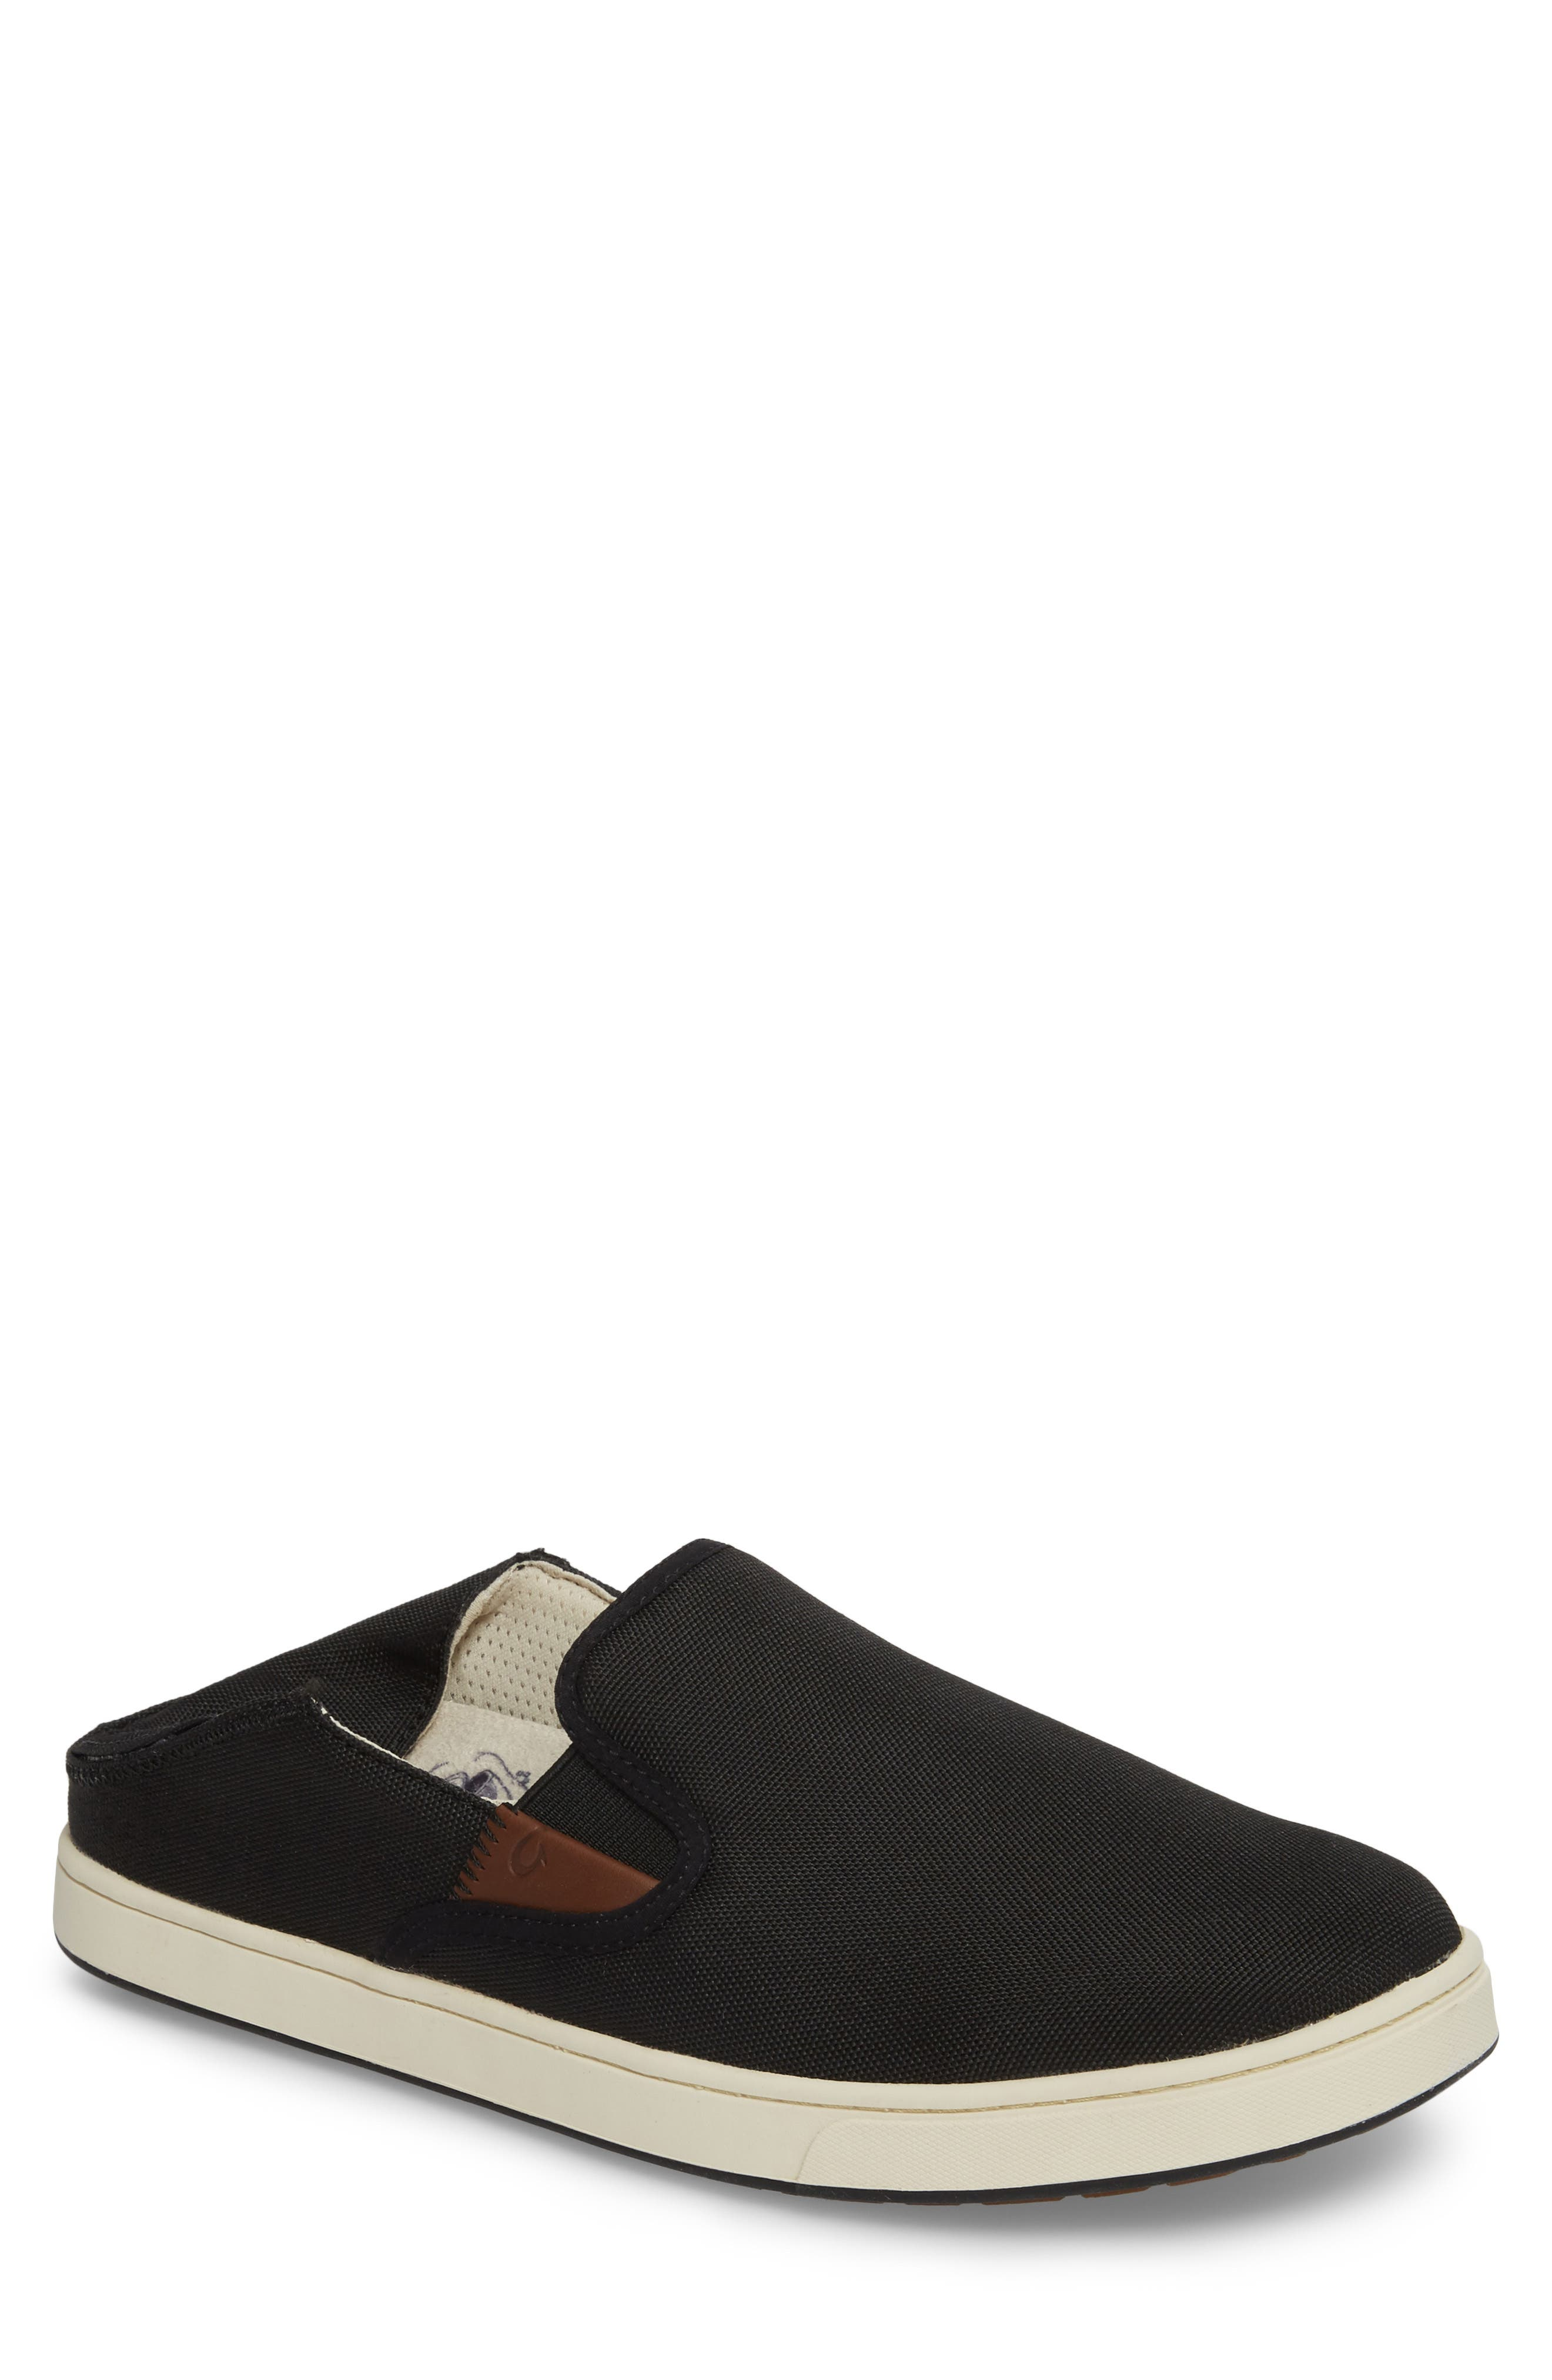 Kahu Collapsible Slip-On Sneaker,                         Main,                         color, Black/ Off White